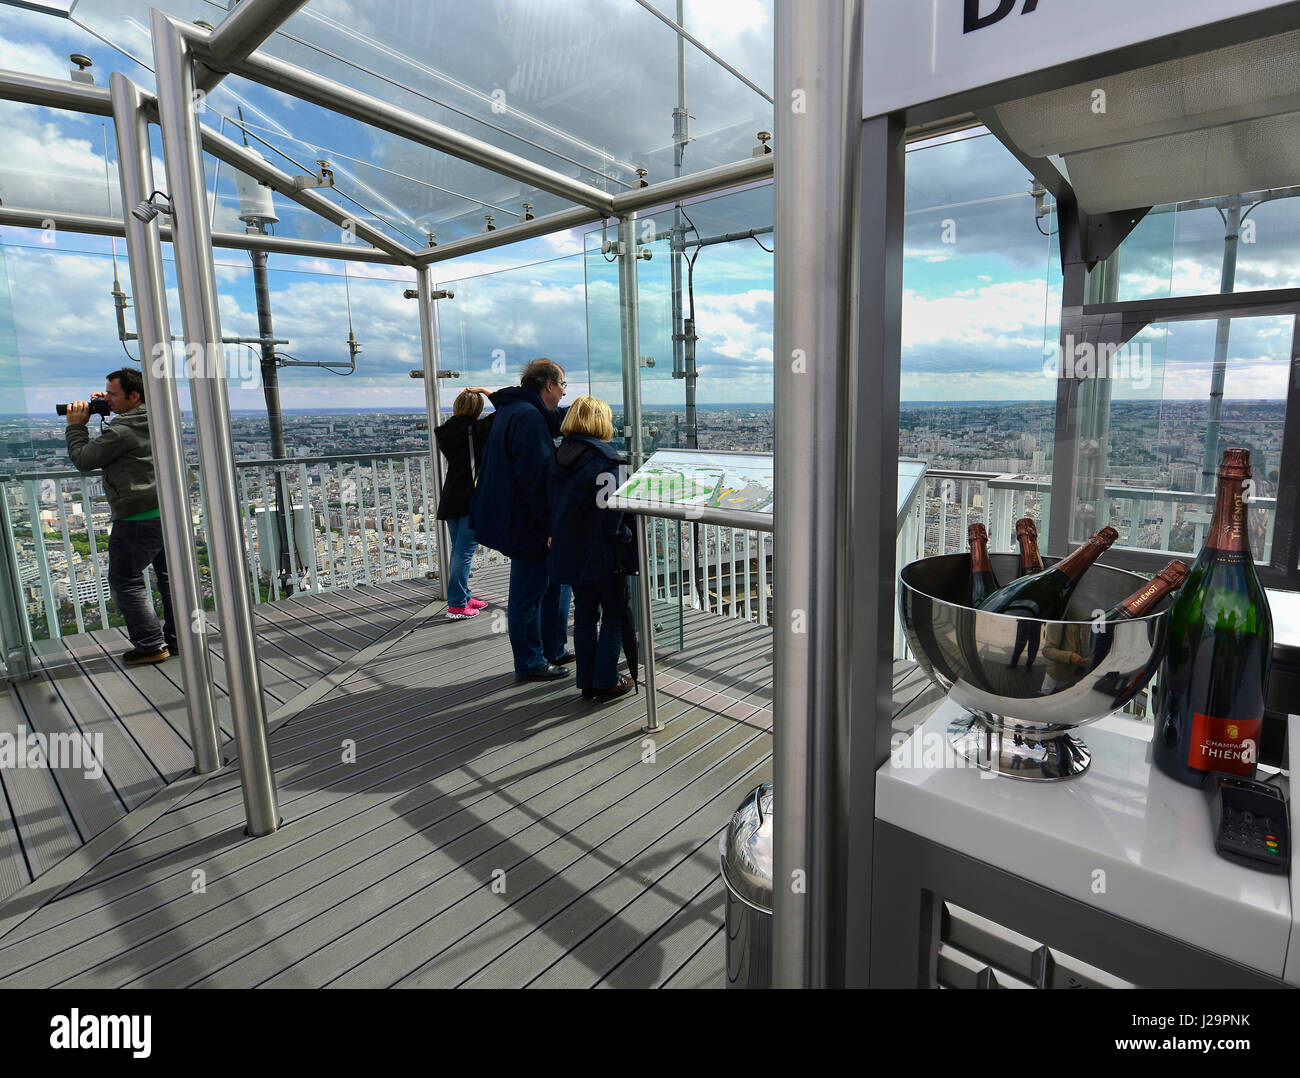 Bar Terrasse Montparnasse Paris Tower Bar Stock Photos Paris Tower Bar Stock Images Alamy